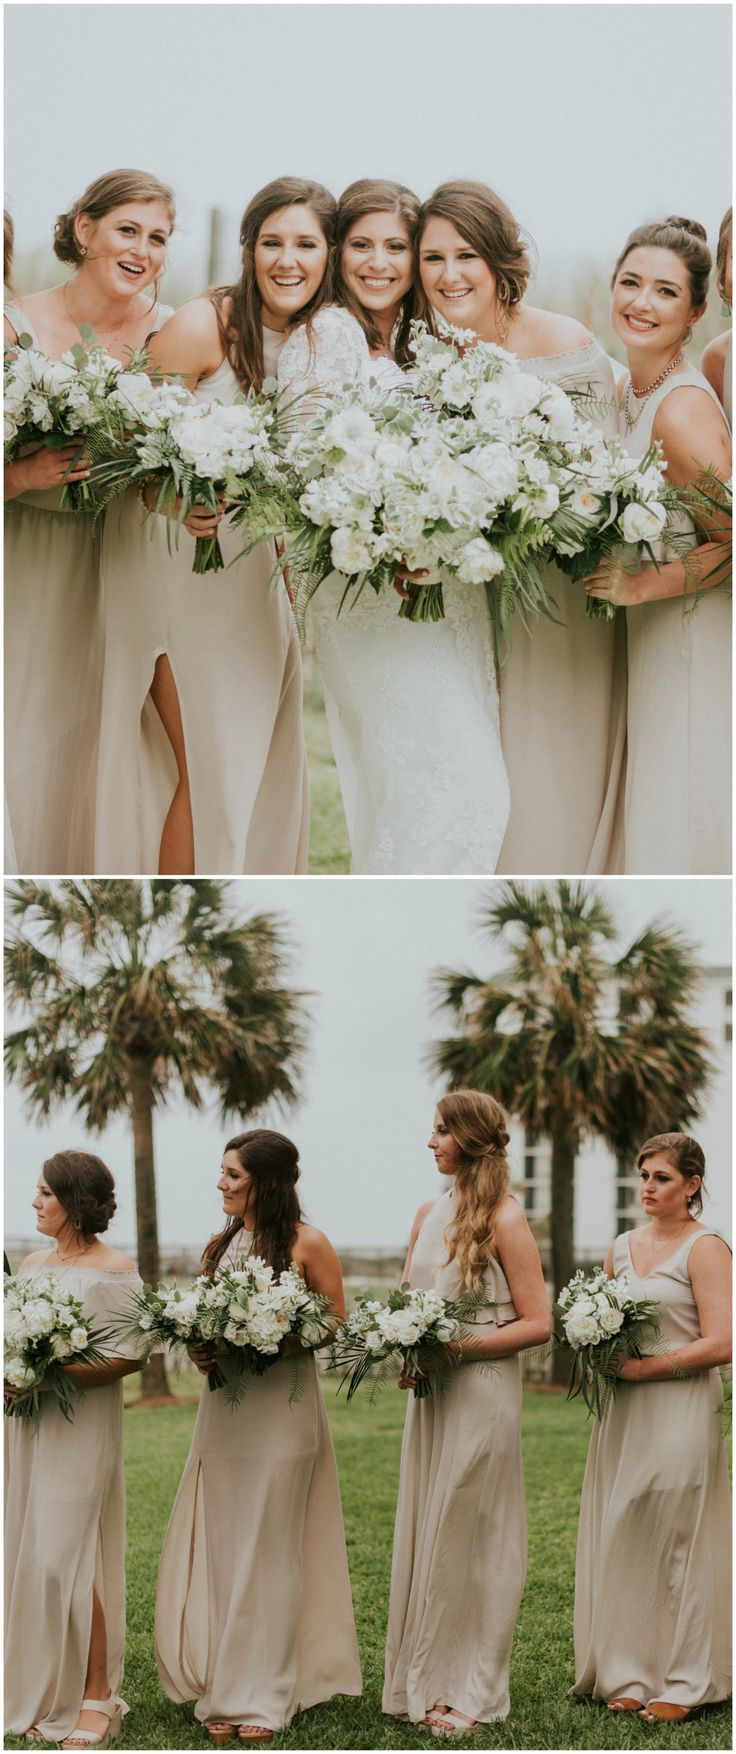 Neutral bridal party, tropical Florida wedding, white wedding bouquets, tan bridesmaid dresses, mismatched styles // Jessi Field Photography